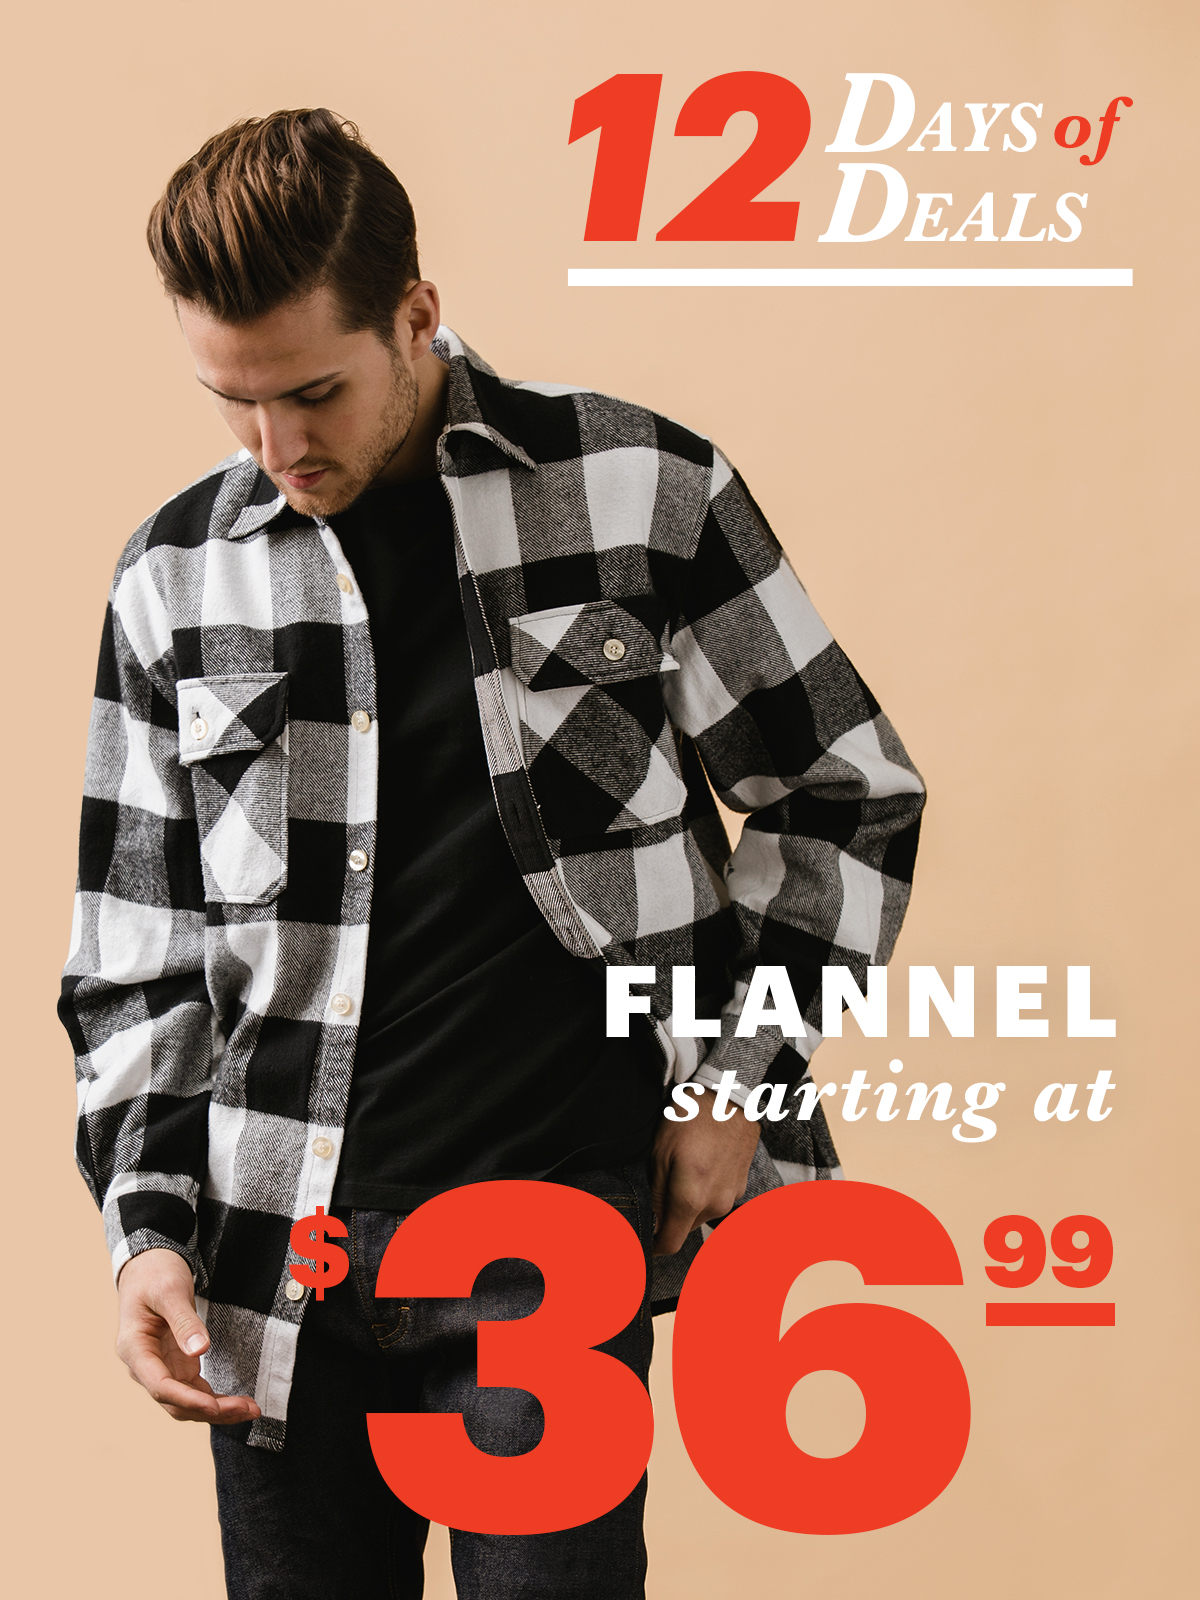 12 Days Of Deals: Day 10 Flannel Starting At $36.99